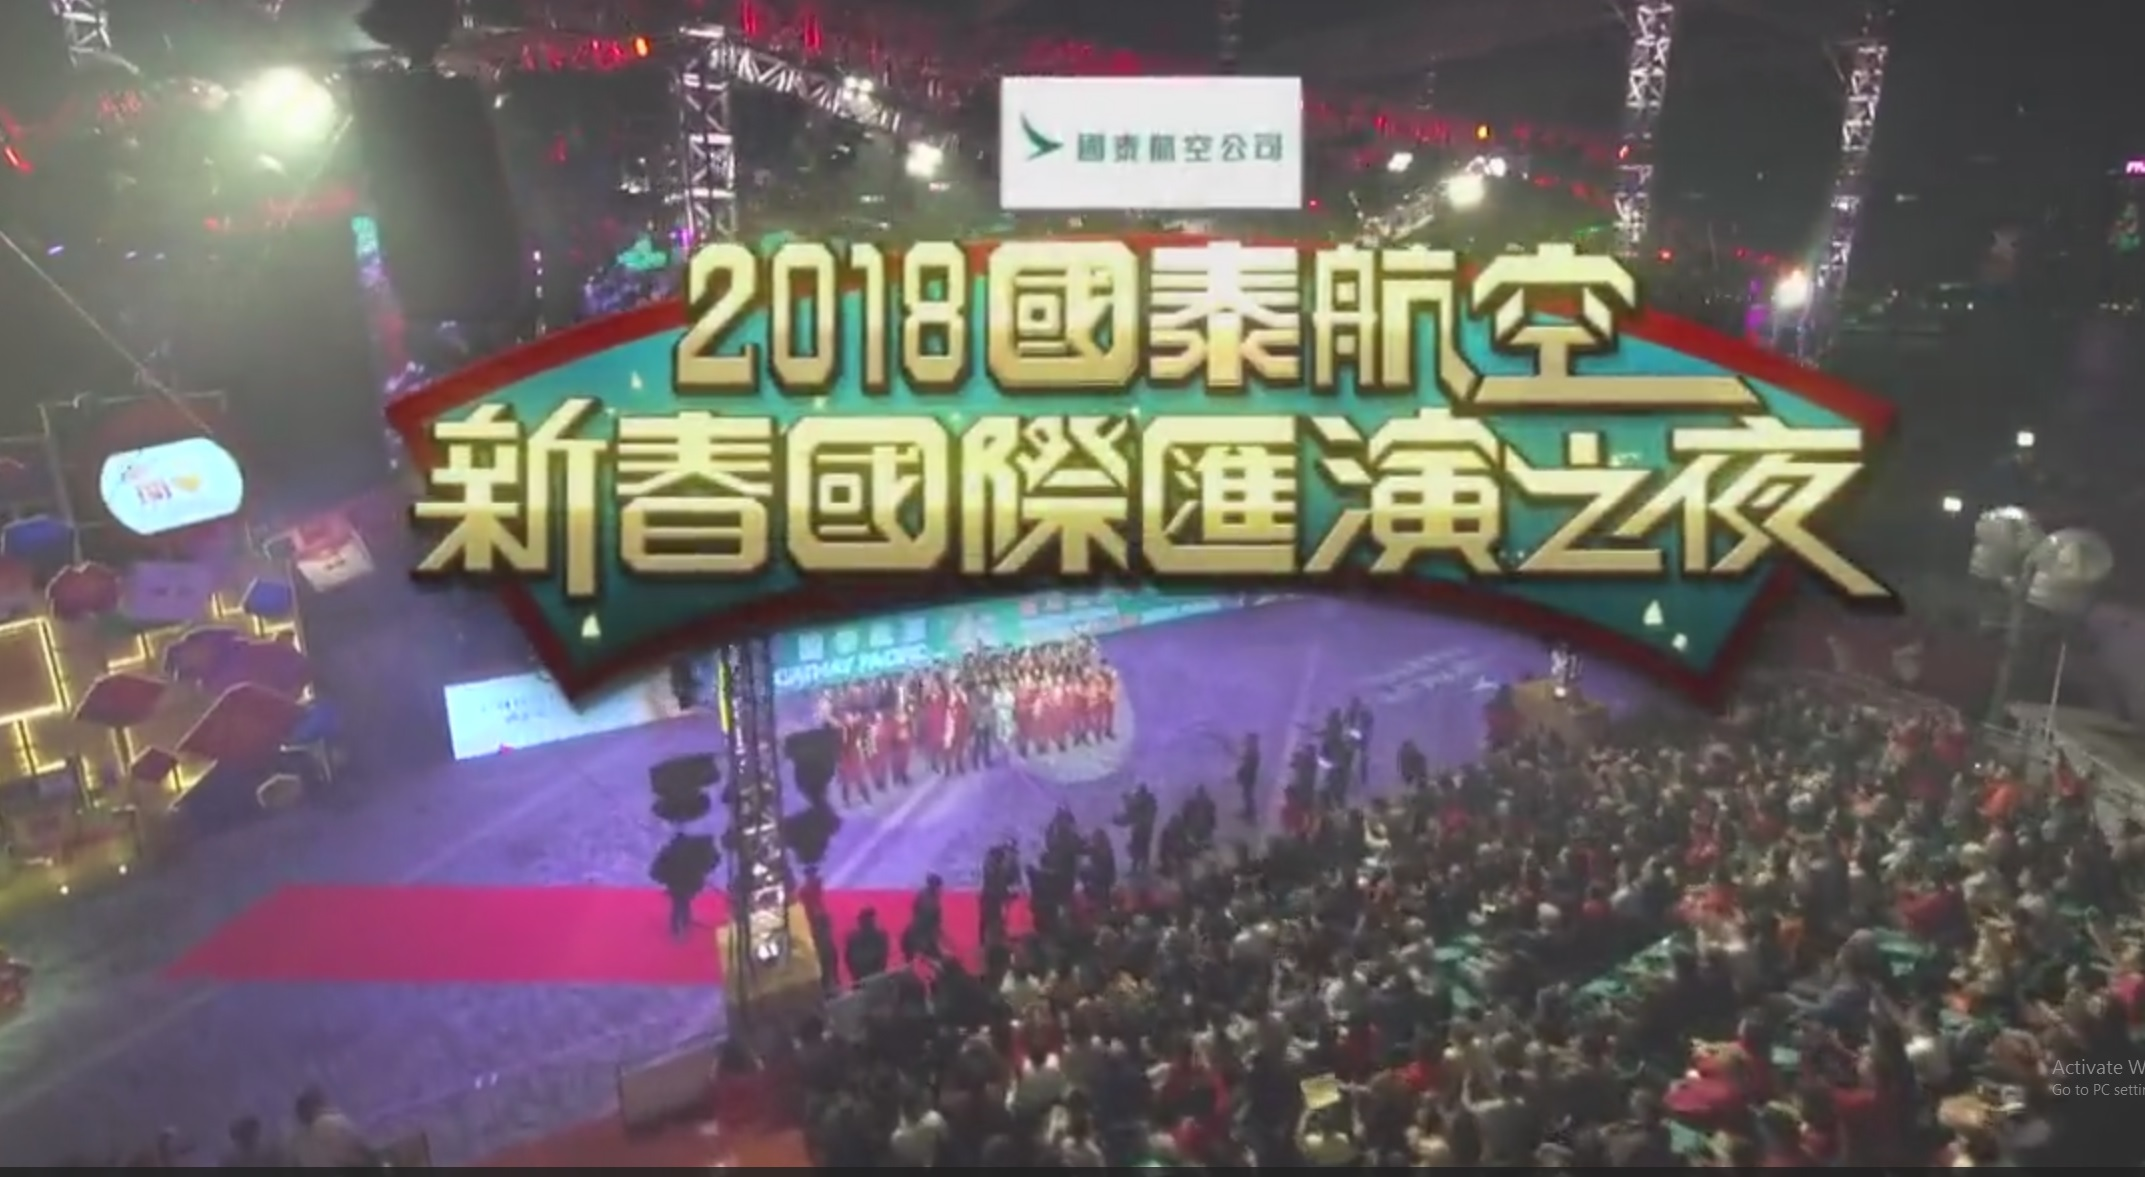 Cathay Pacific Chinese New Year Night Parade 2018 – 2018國泰航空新春國際匯演之夜